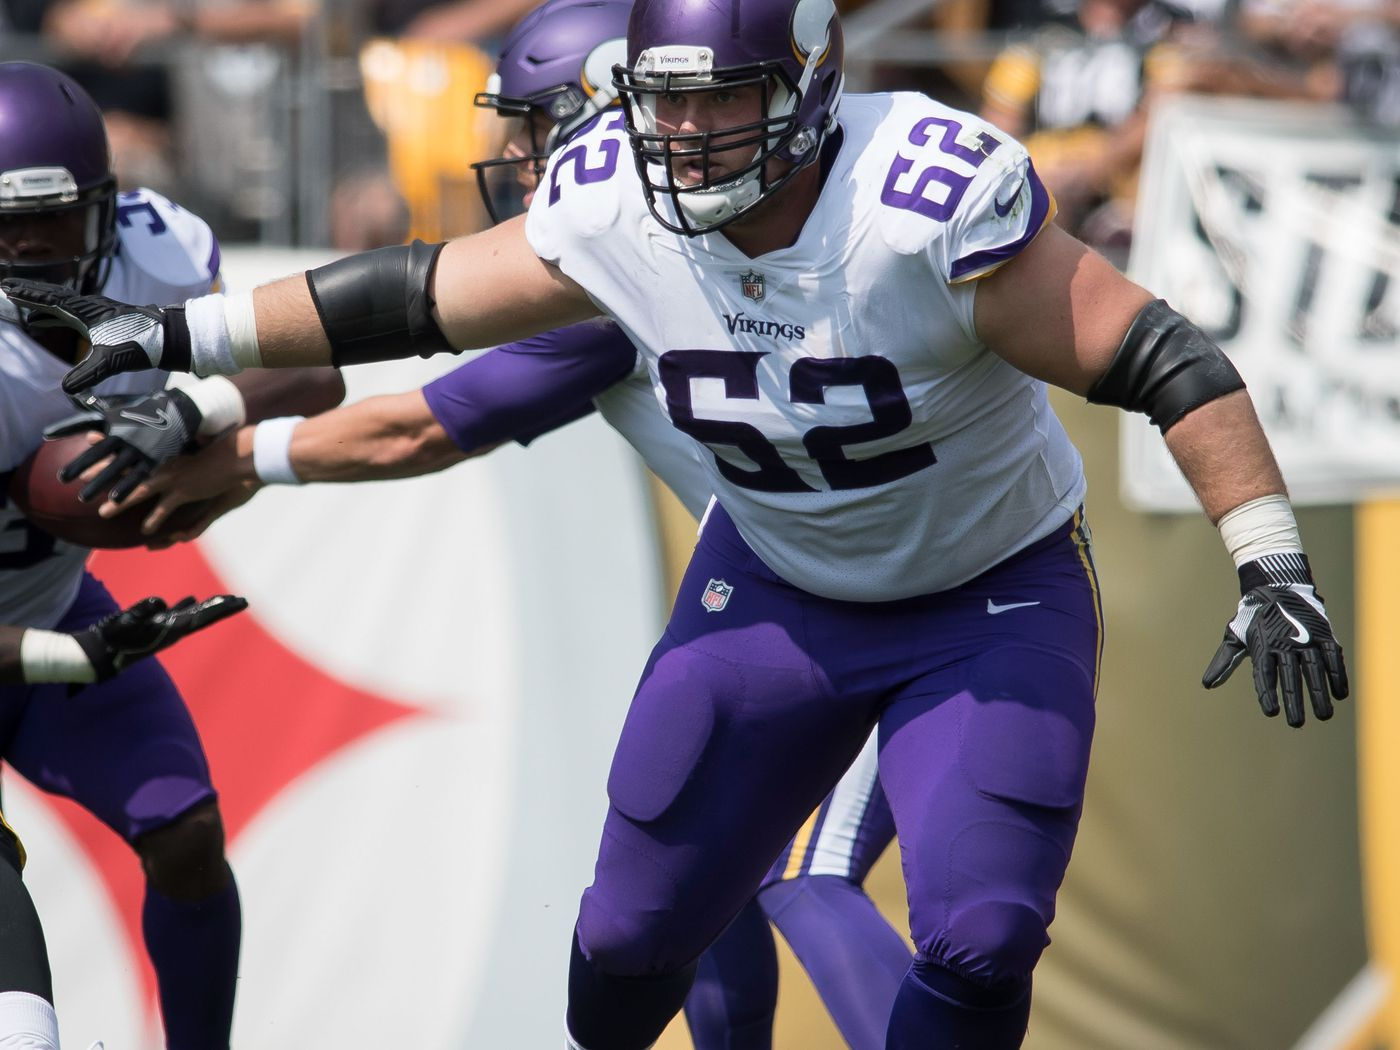 Report: Vikings make contract offer to Nick Easton - Daily